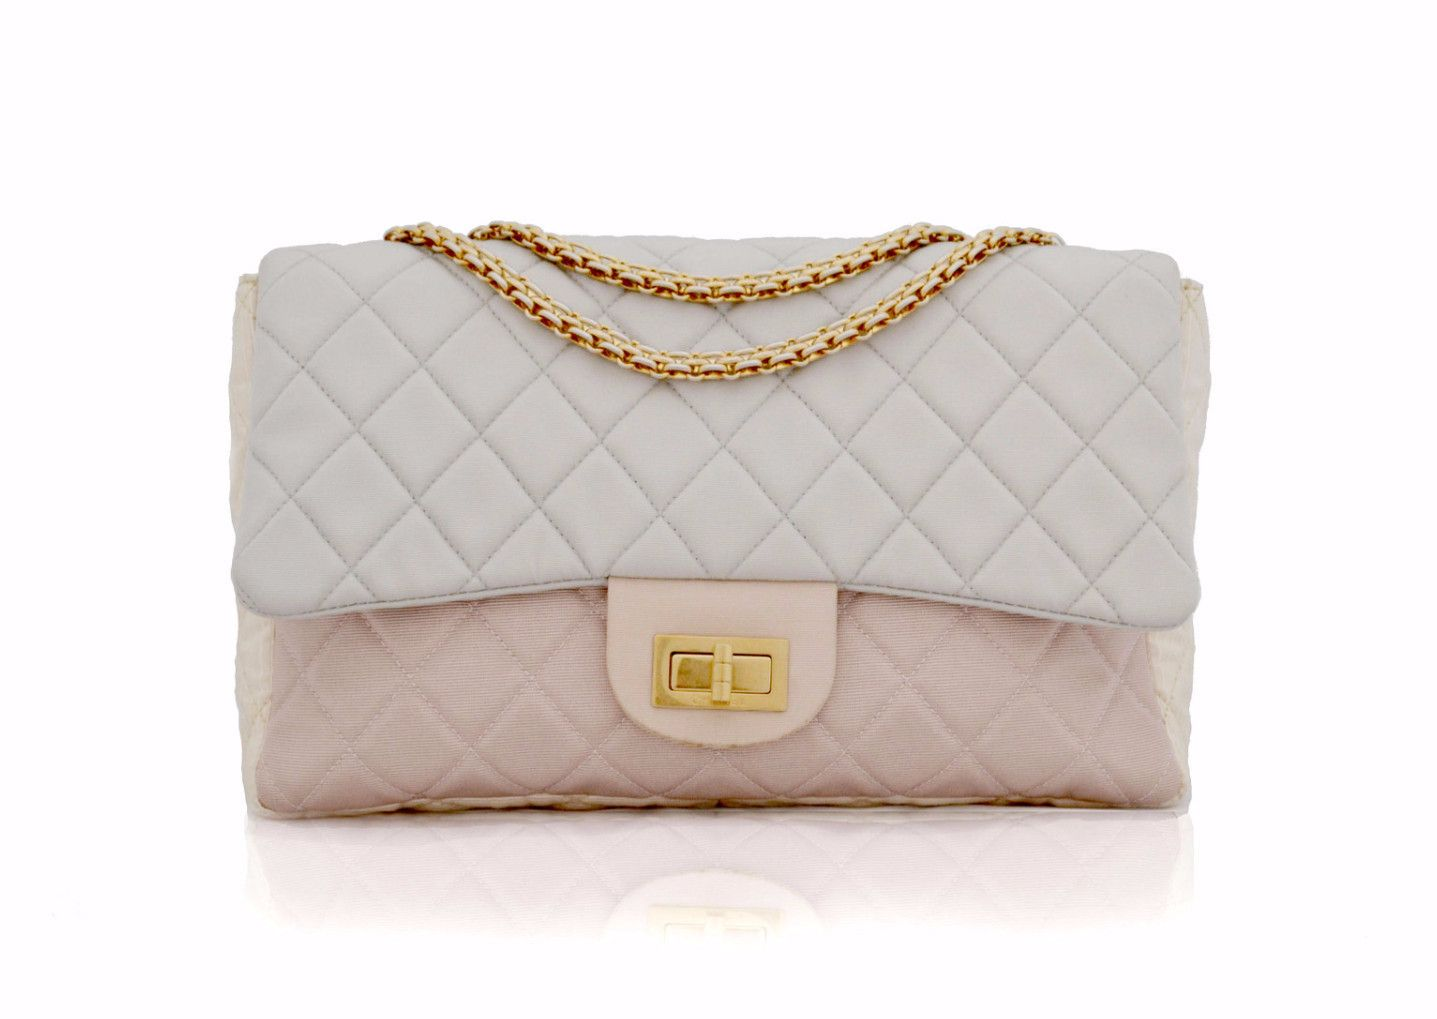 CHANEL VINTAGE BAG - Jumbo Reissue 2.55 in Pastel Nylon from Vintage  District - Authentic vintage designer bags UK e782a9c1f6106